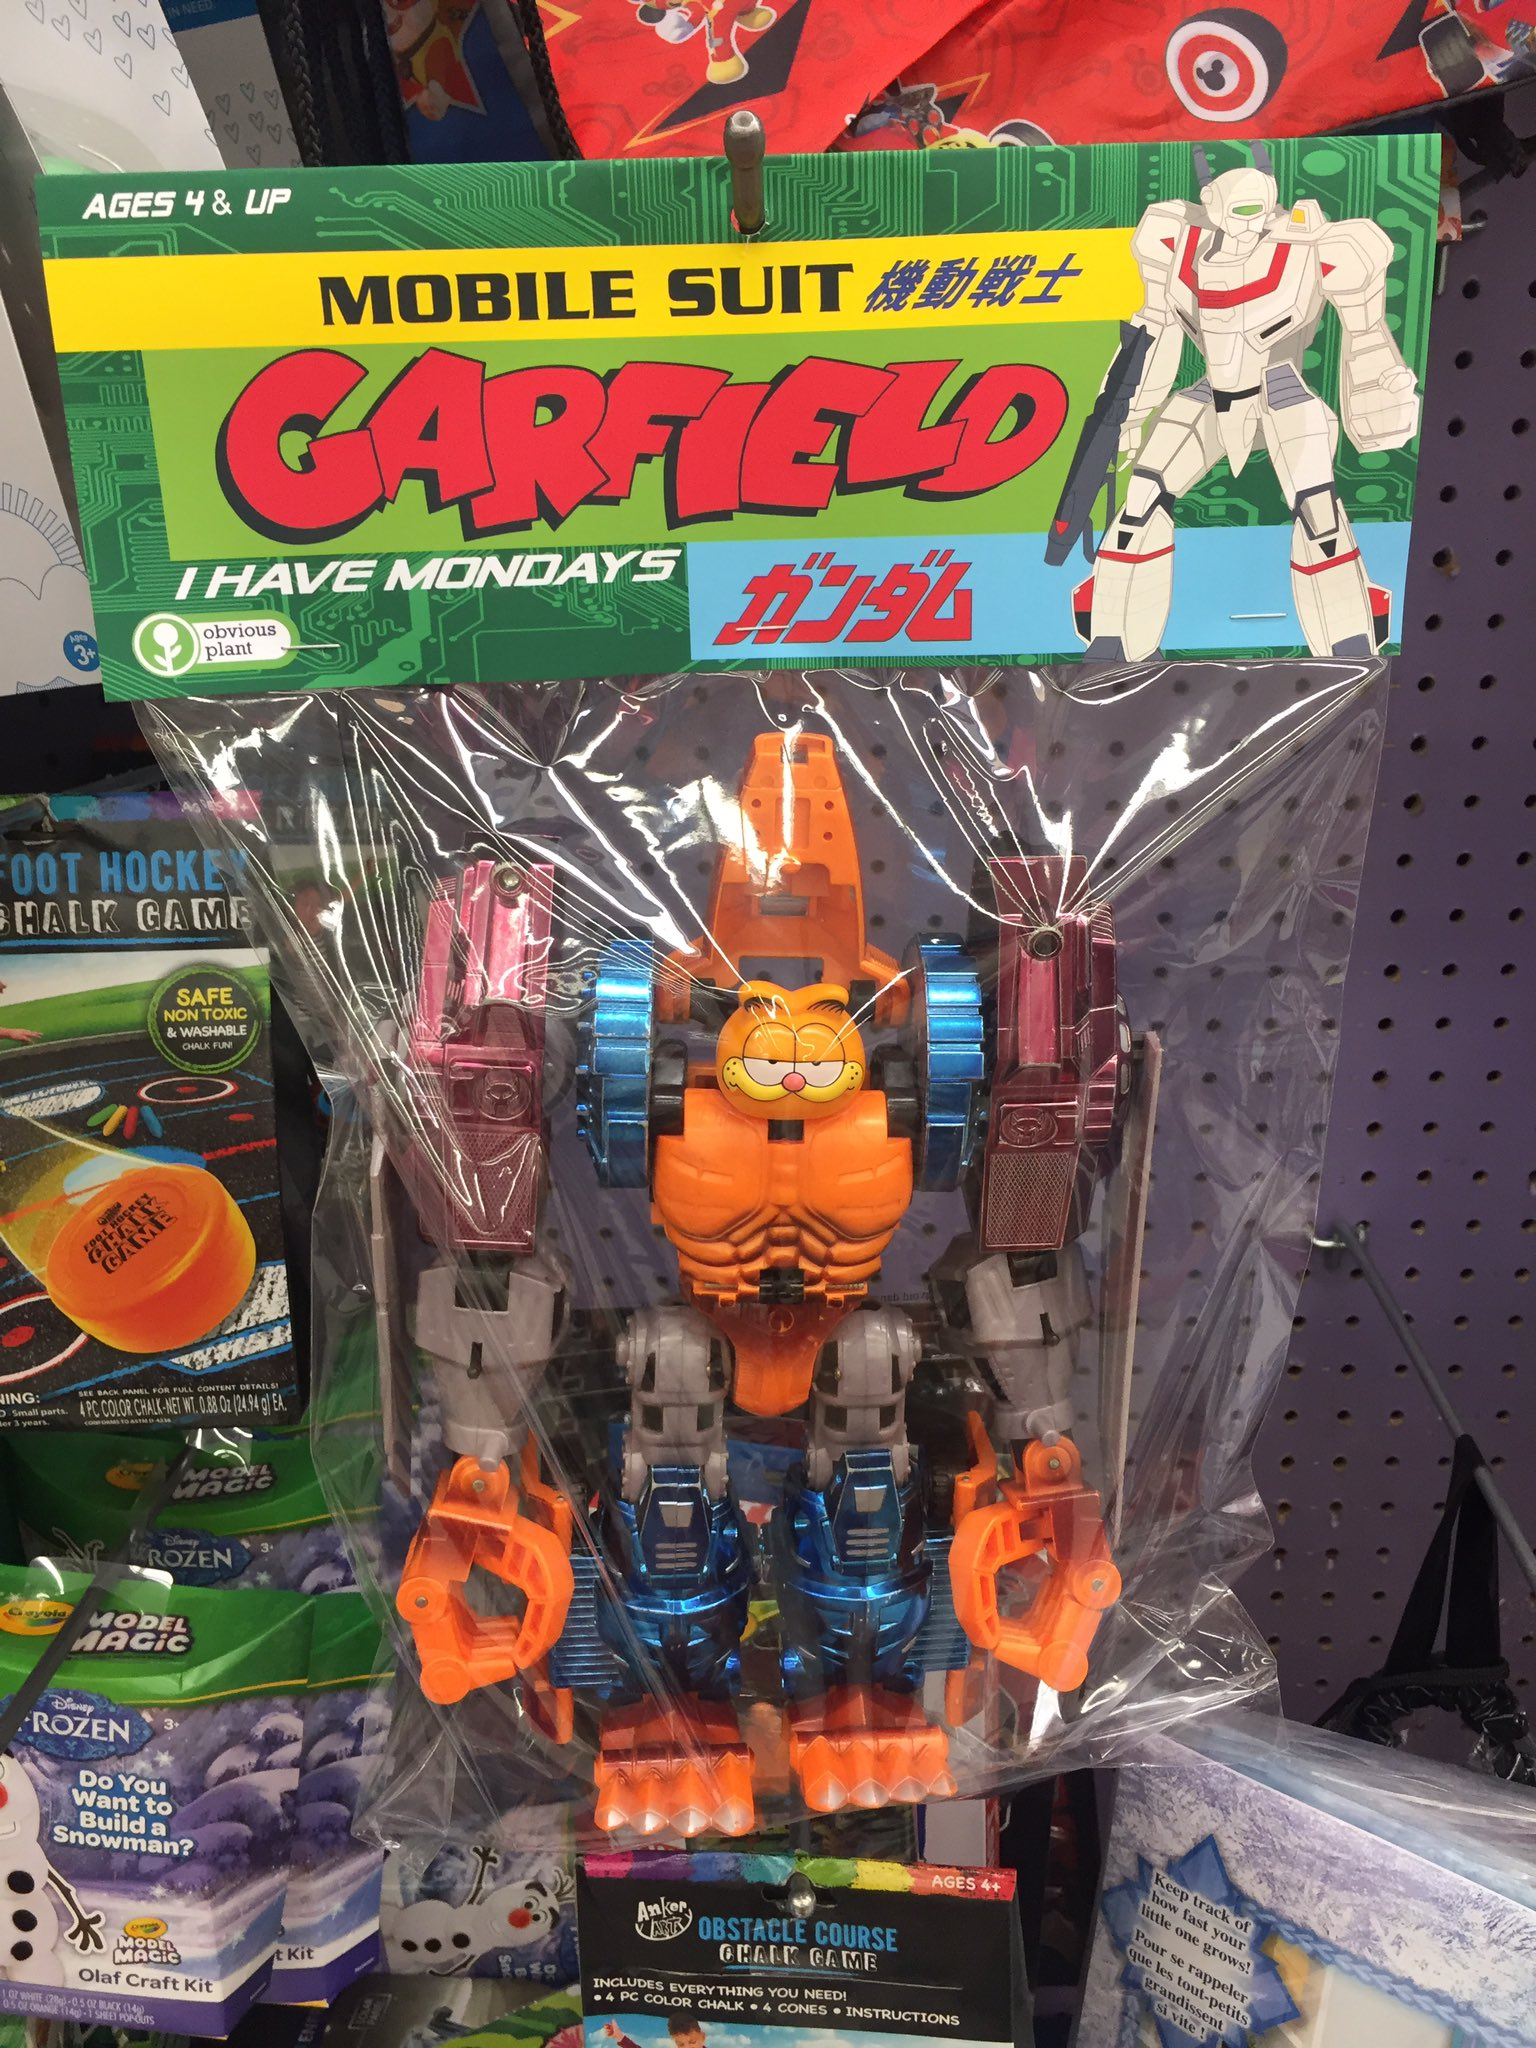 Obvious Plant On Twitter Mobile Suit Garfield